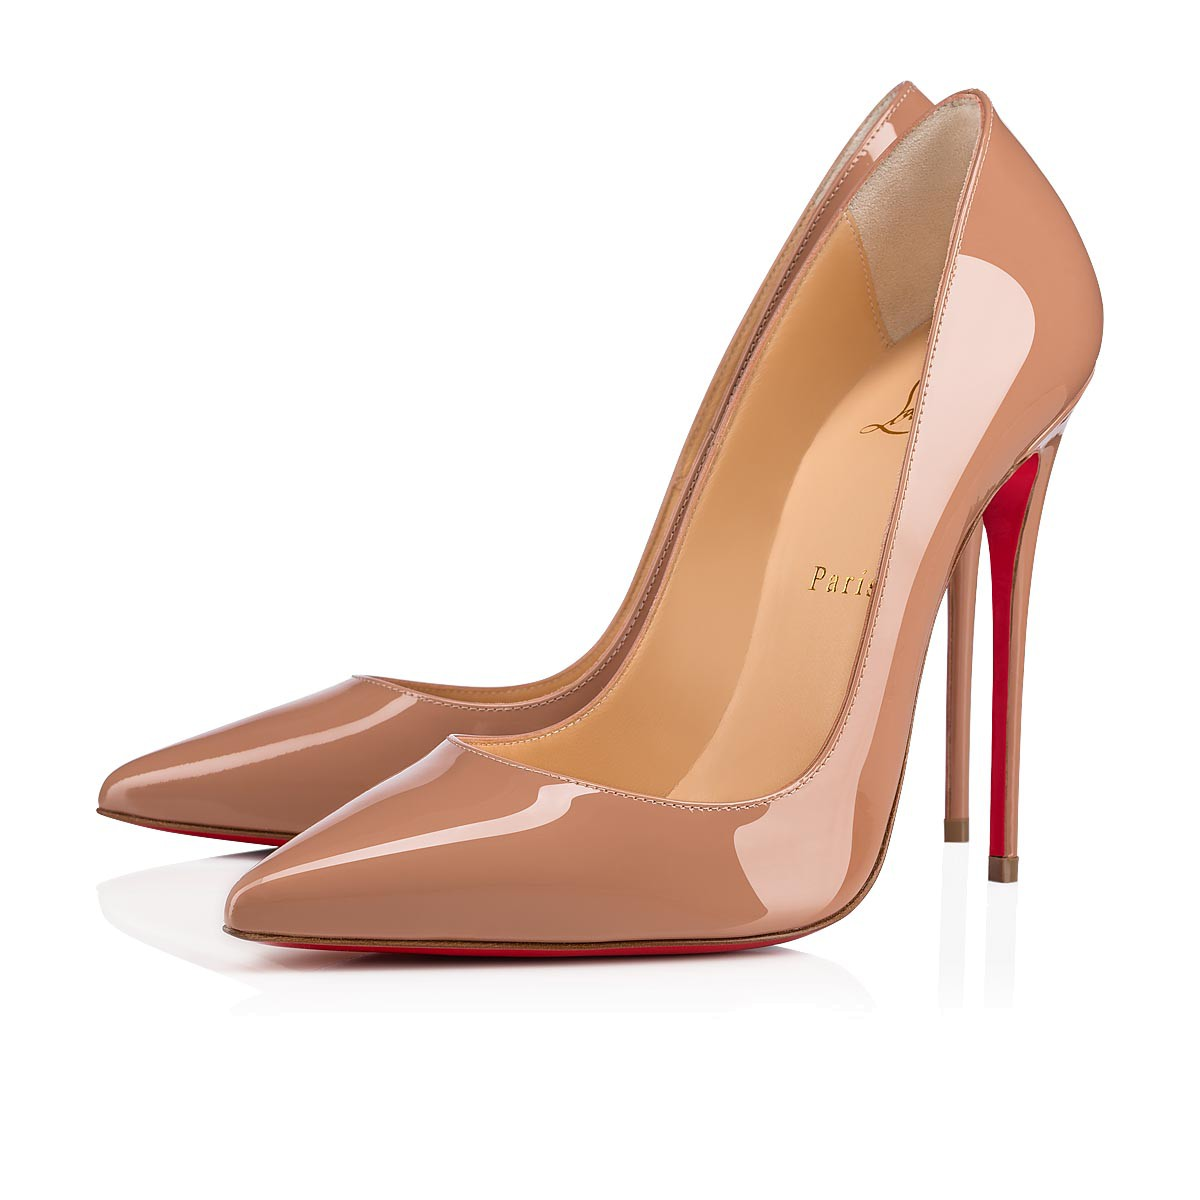 293ac07d09d9 So Kate 120 Nude Patent Leather - Women Shoes - Christian Louboutin